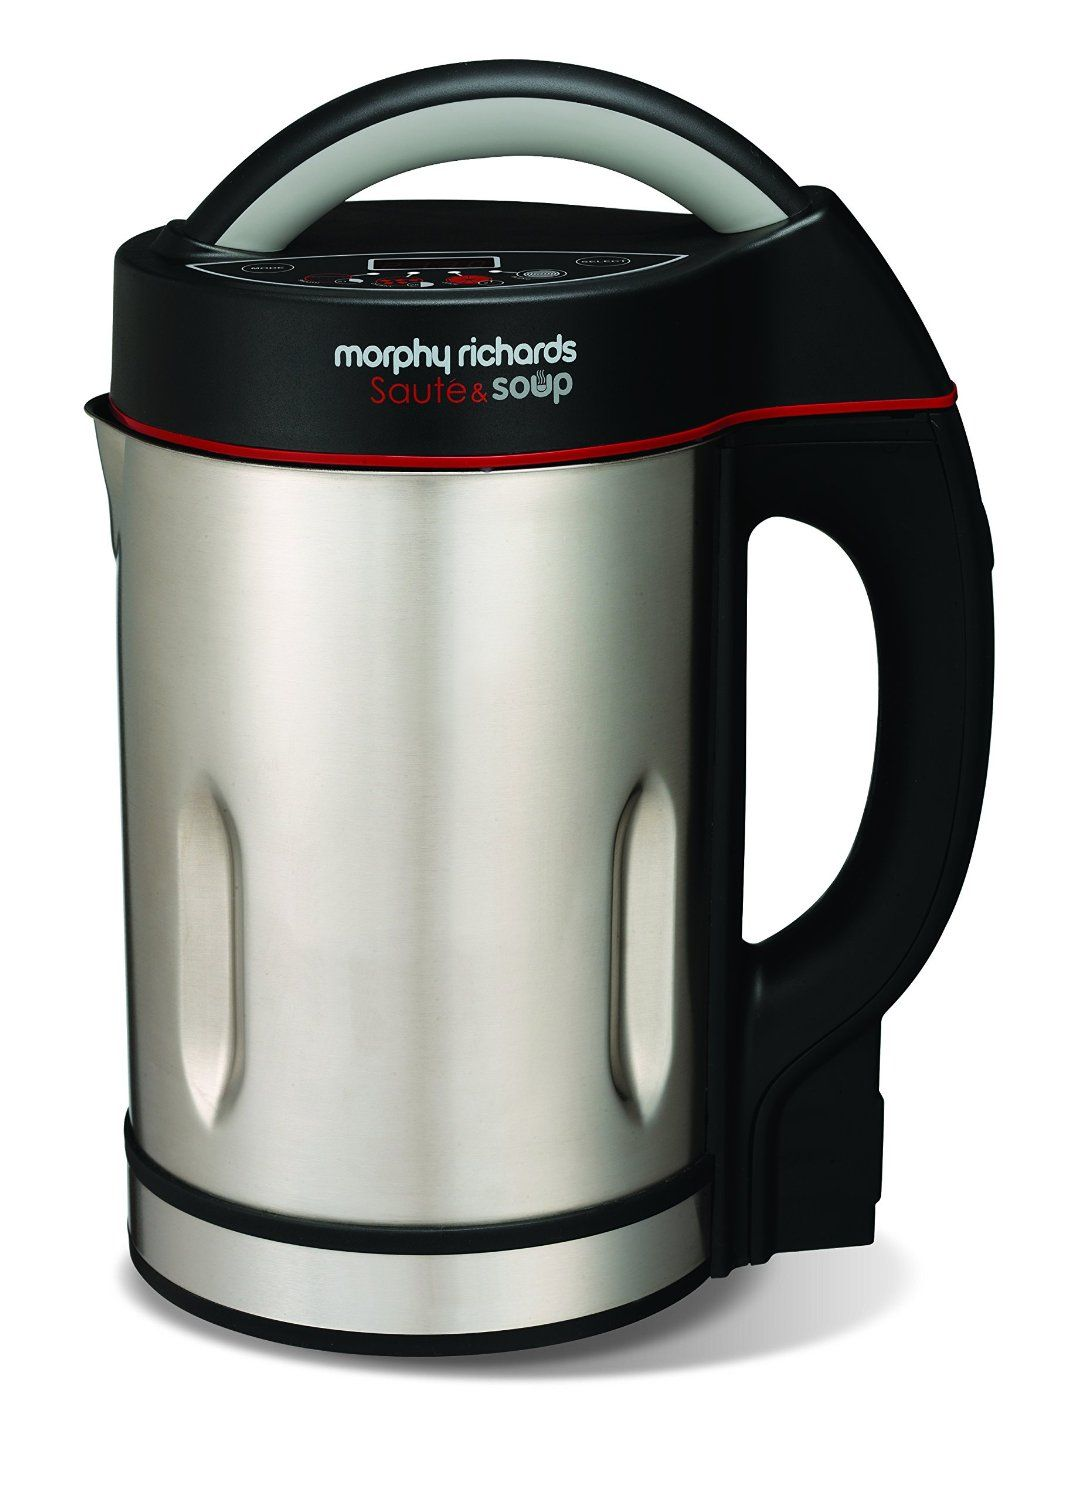 Morphy Richards Soup Maker Soup Maker Morphy Richards Soup Maker Smoothie Makers If you make a lot of soup, investing in a good soup machine will save you time and effort. pinterest